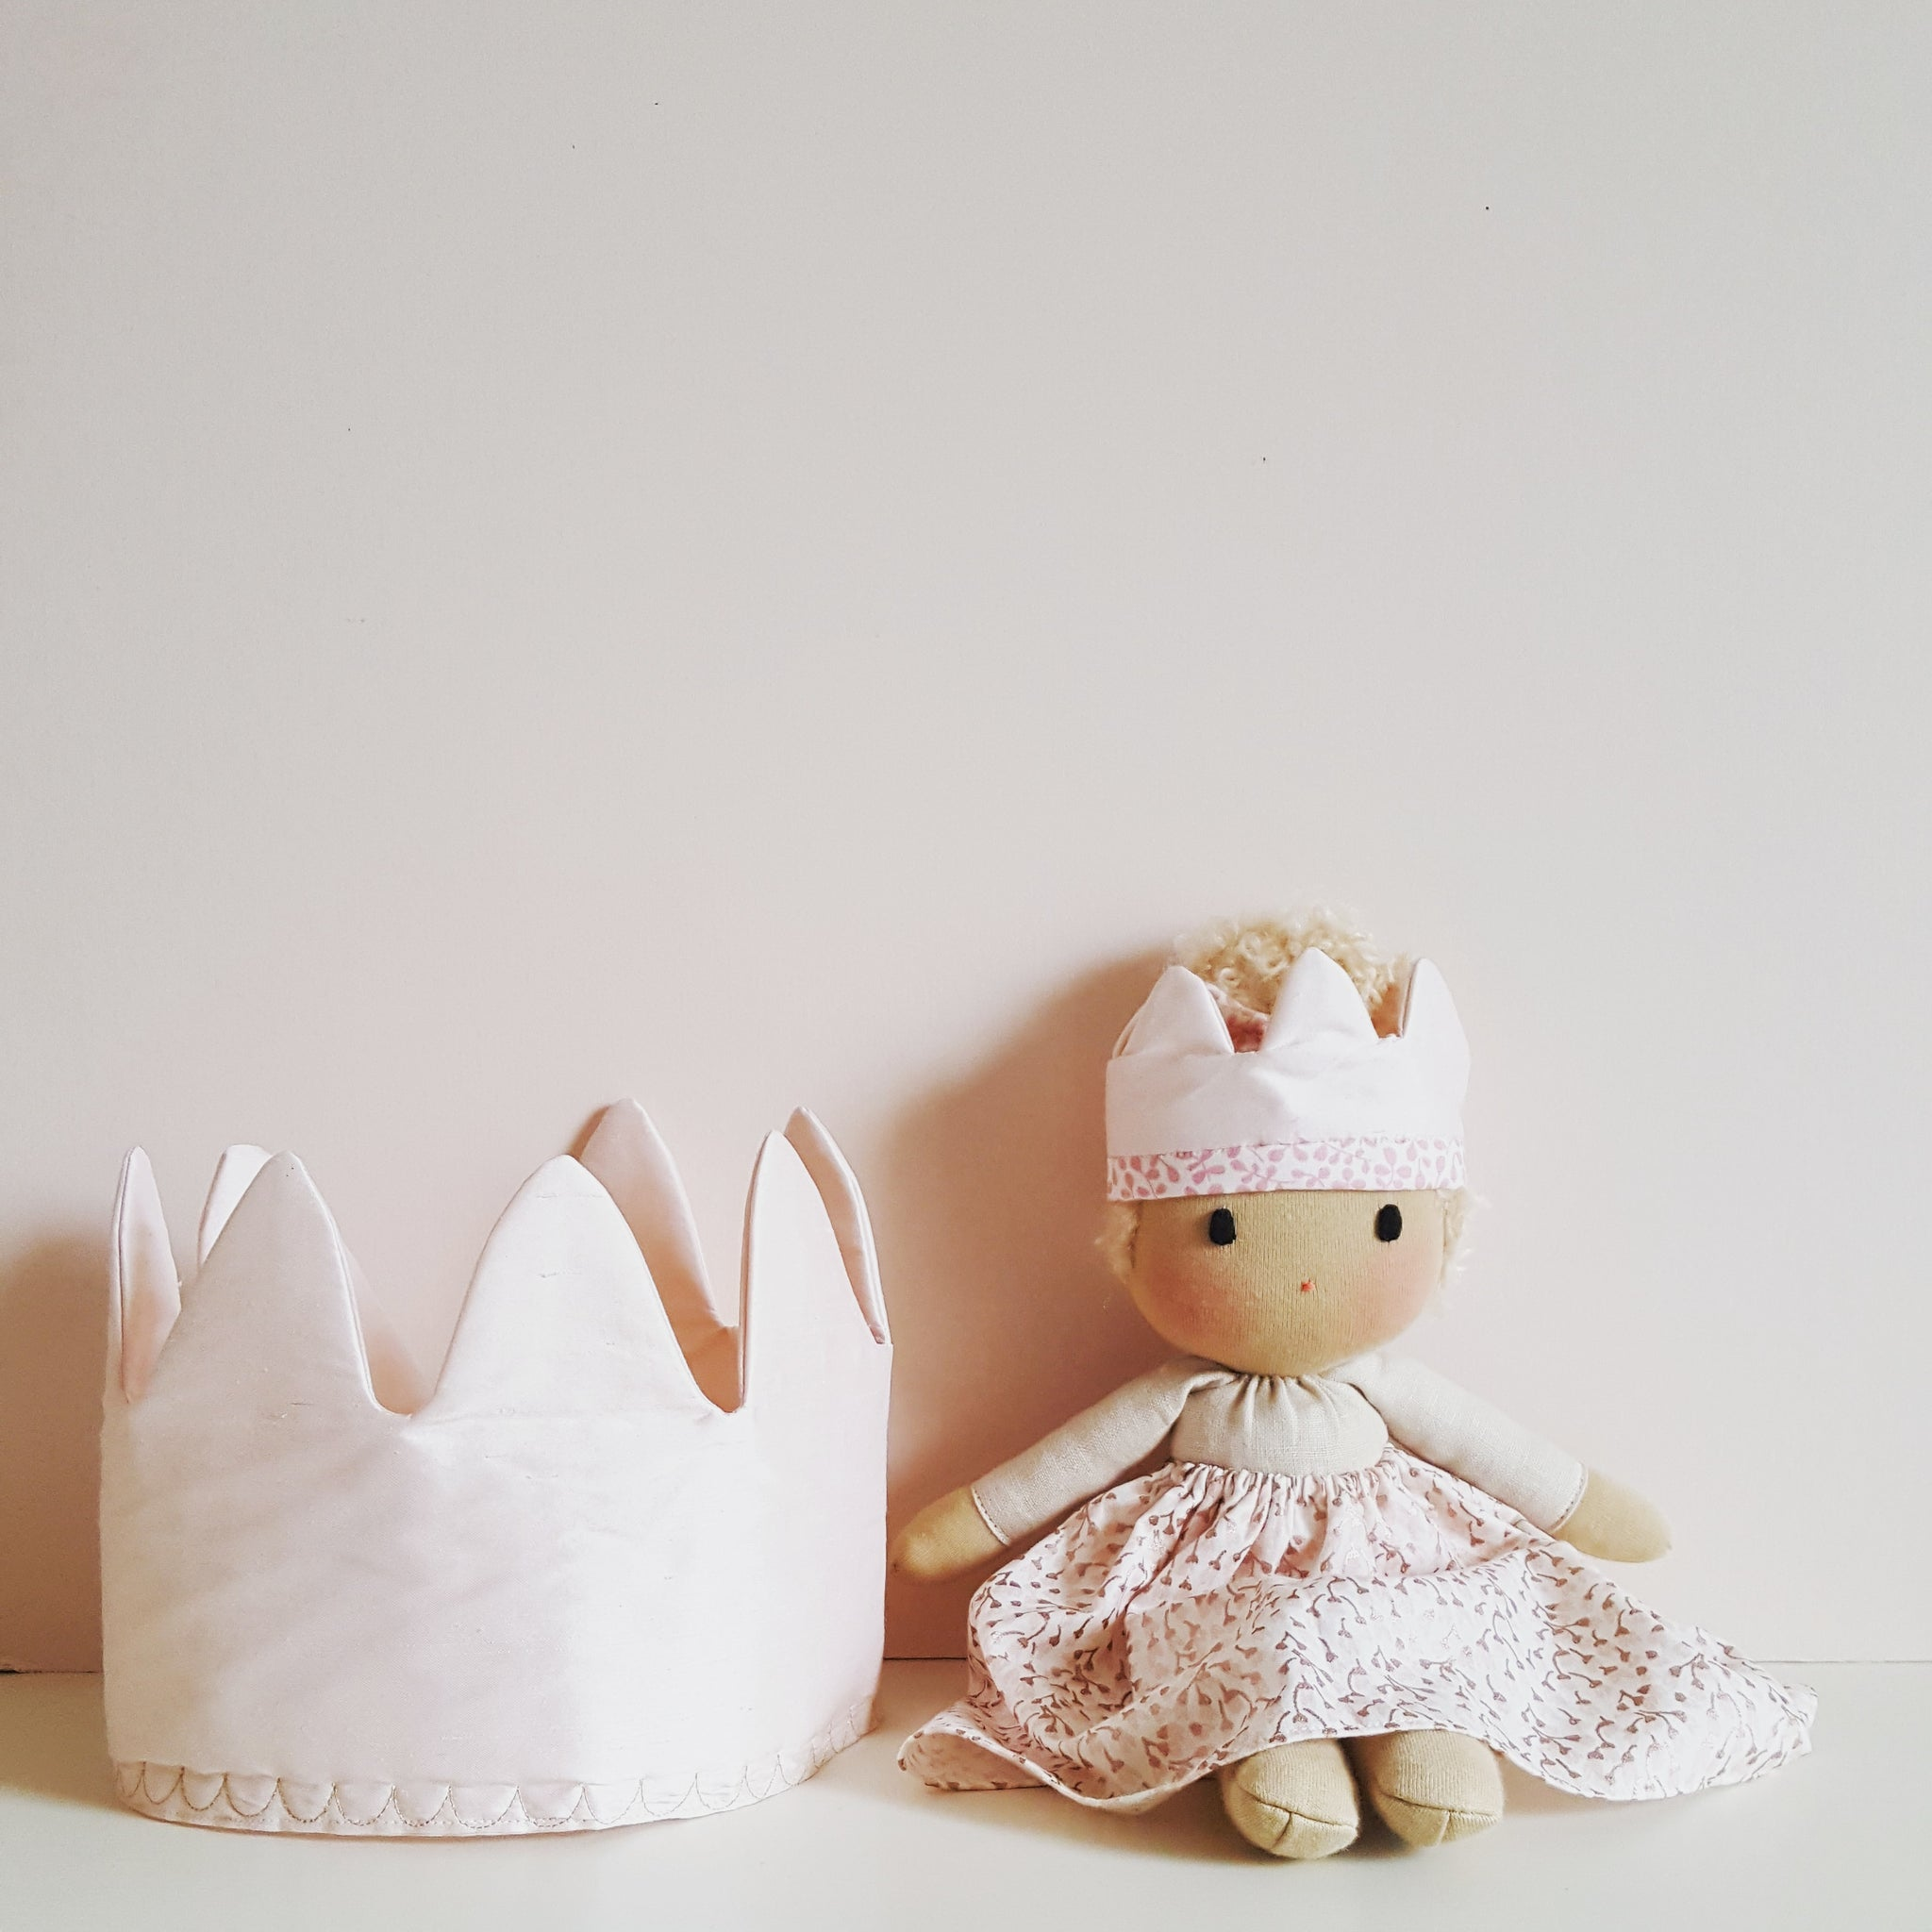 Child's silk dress up crown